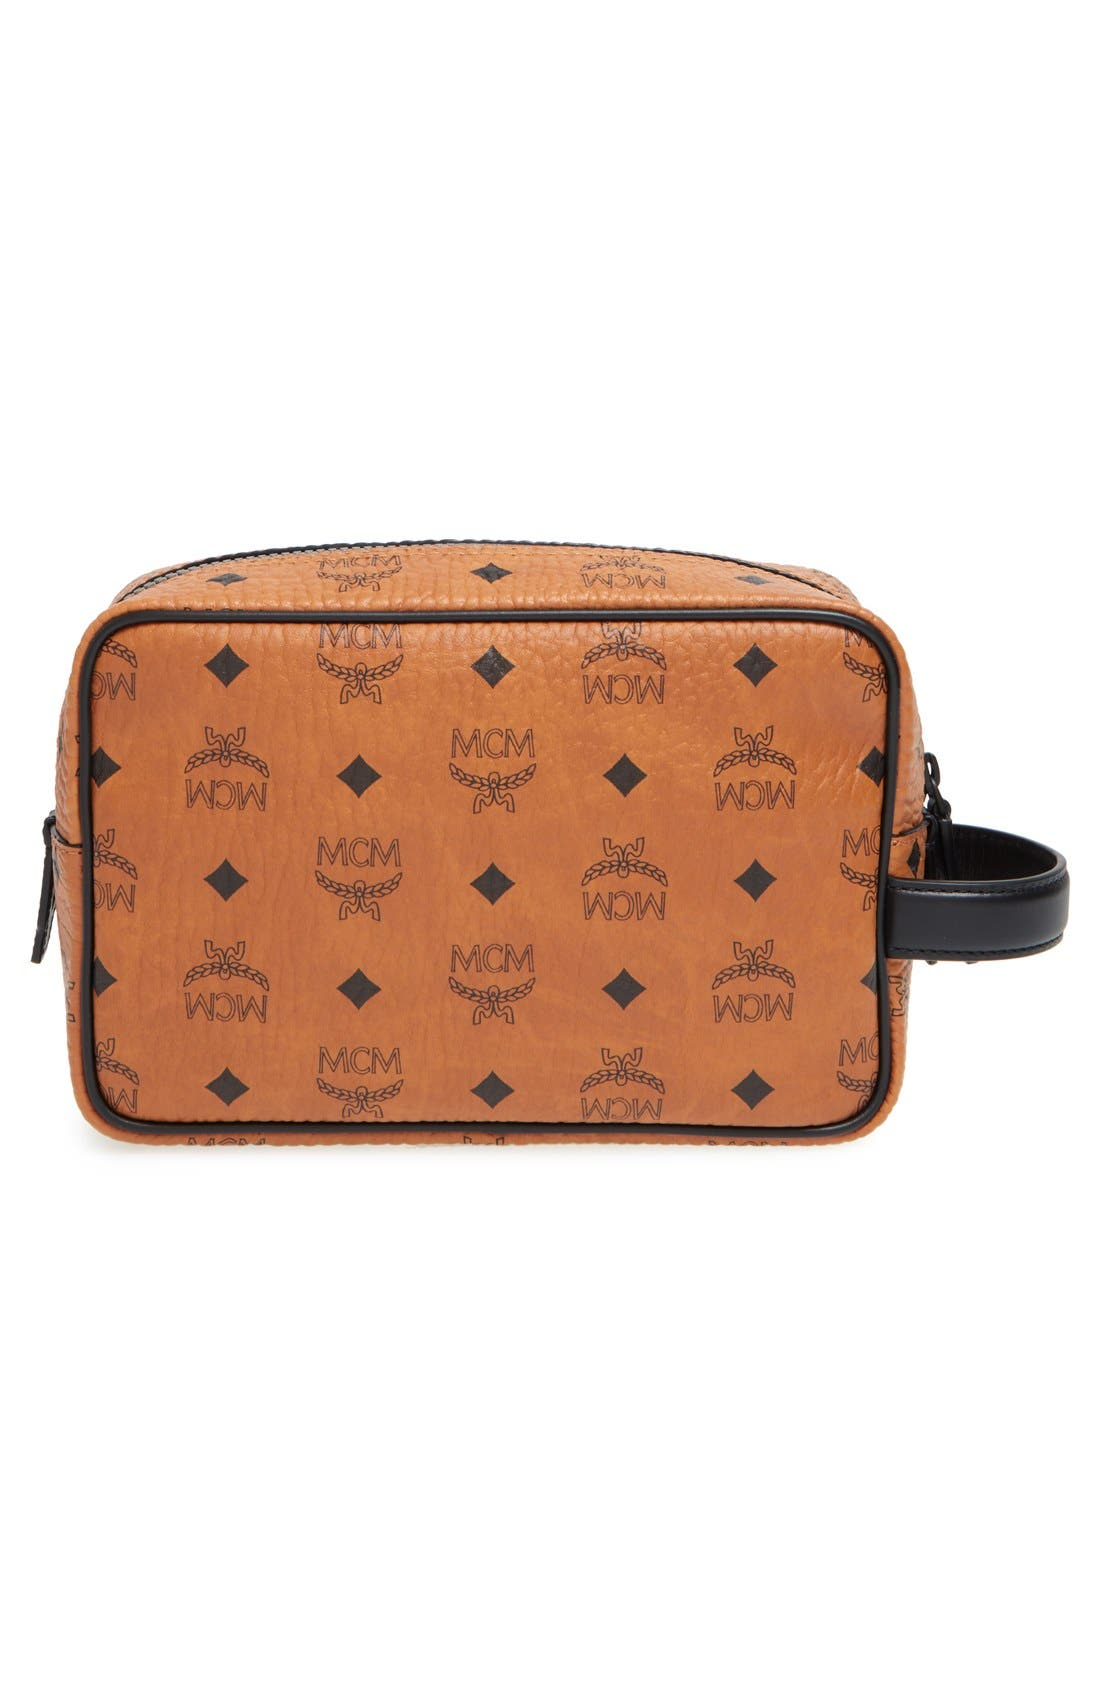 Alternate Image 3  - MCM 'Nomad - Visetos' Coated Canvas Cosmetics Case